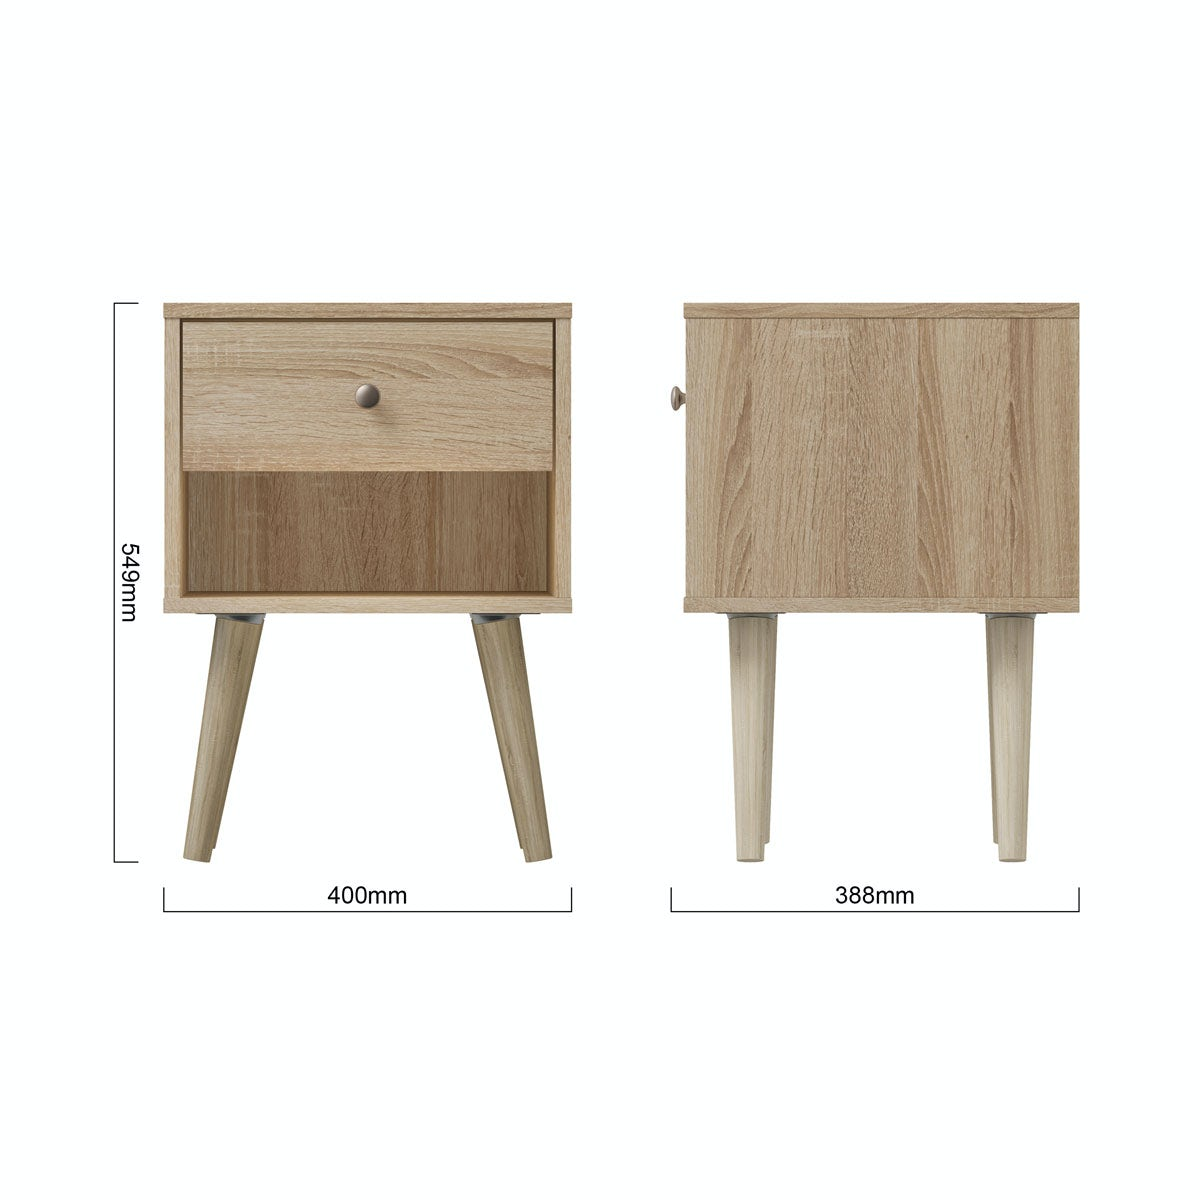 Dimensions for MFI Helsinki Oak bedside